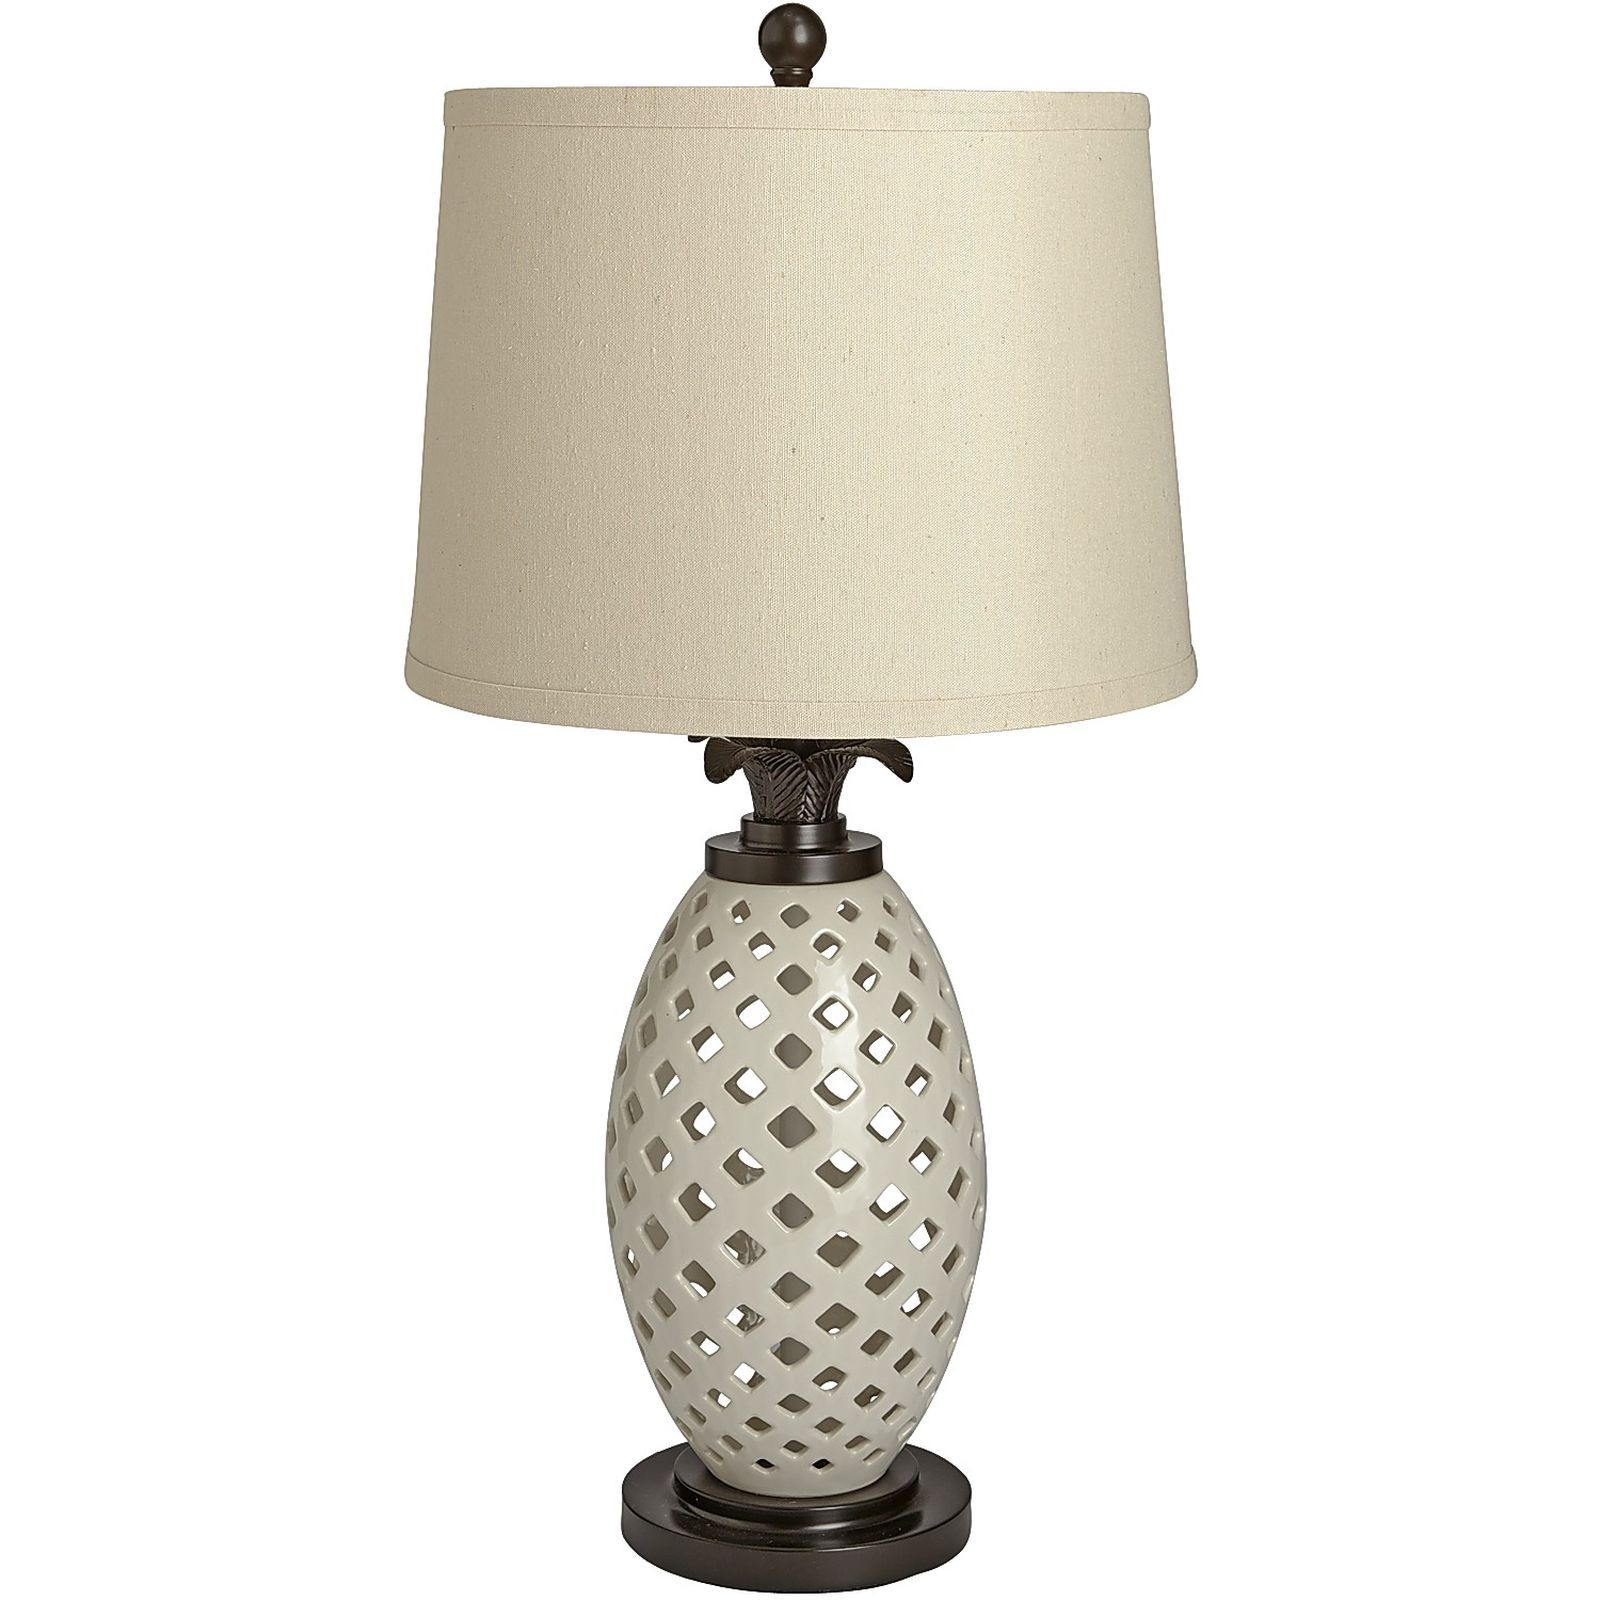 Plantation Lamp Pier 1 Imports Consultations Table